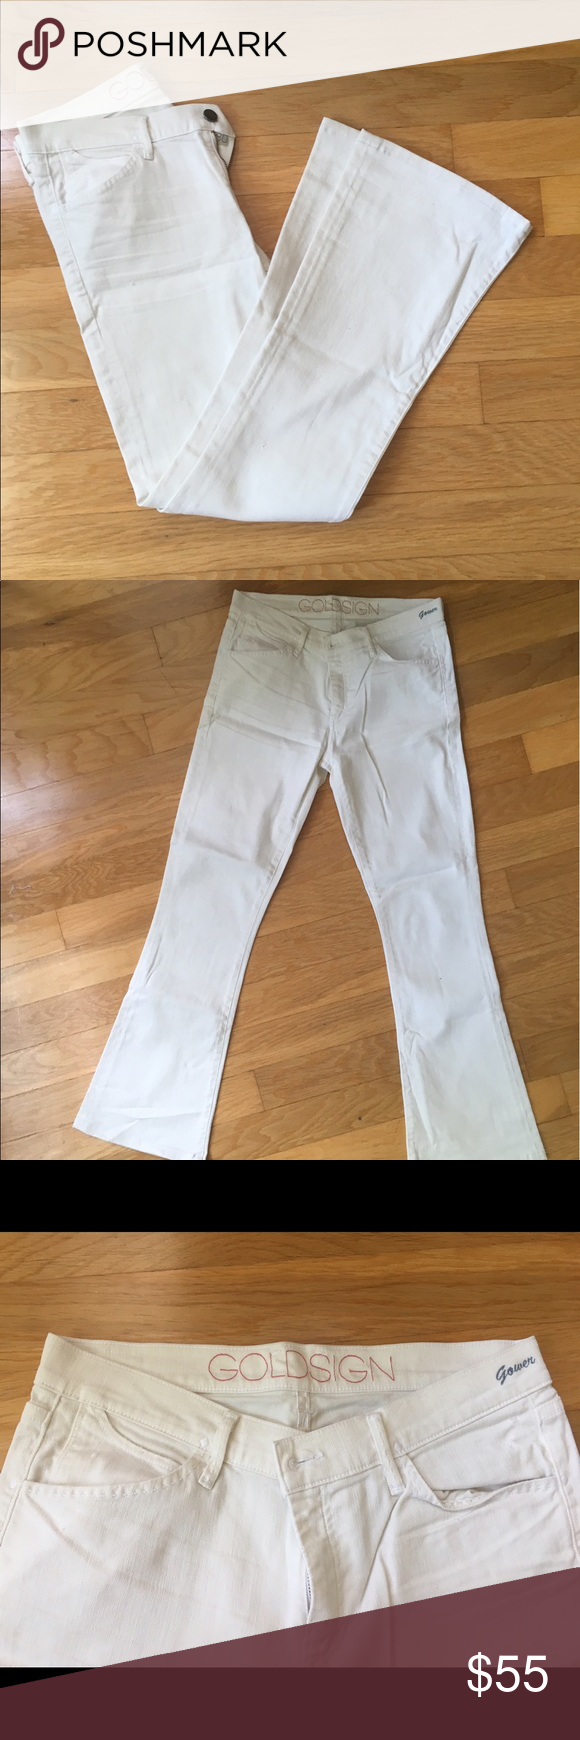 "Goldsign off white flare jeans Goldsign Gower jeans in soft white color. Flare leg. Never used. Legs altered to fit me and I am 5'5"". Slight distressing. Beautiful and very comfortable. Goldsign Jeans Flare & Wide Leg"